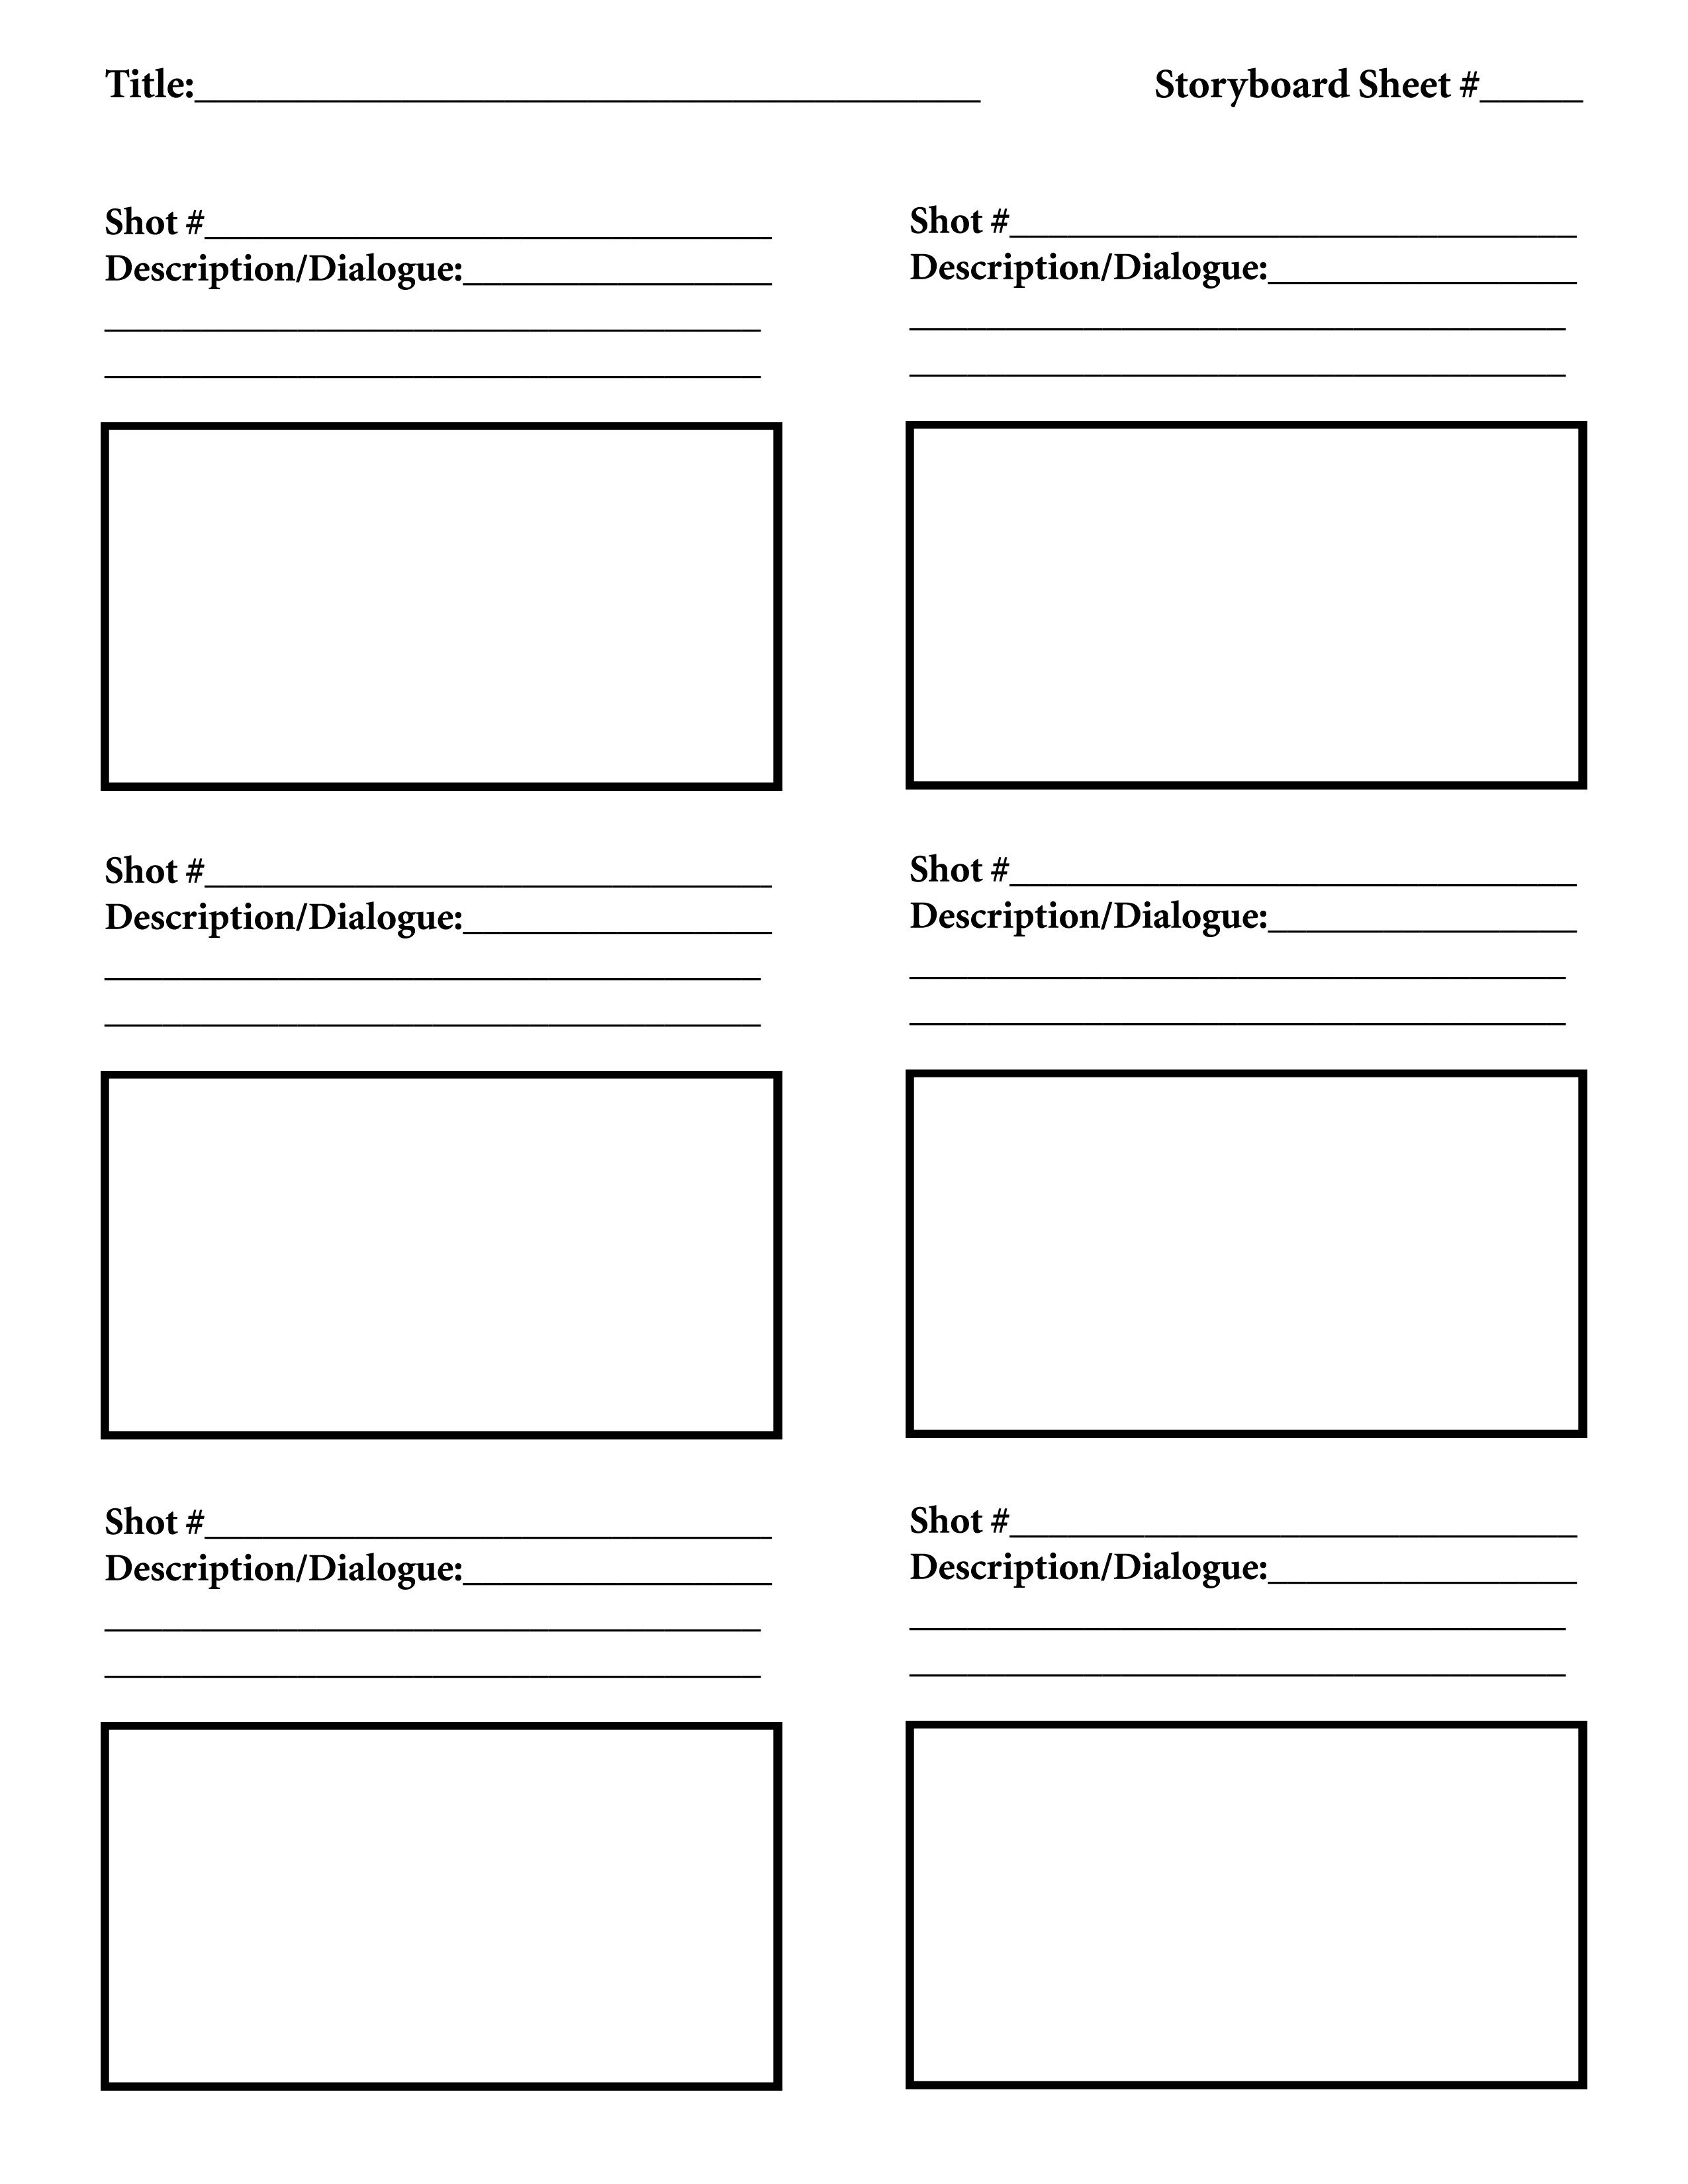 Film Storyboard Template Pdf Download Free Storyboard Template Tutorials In